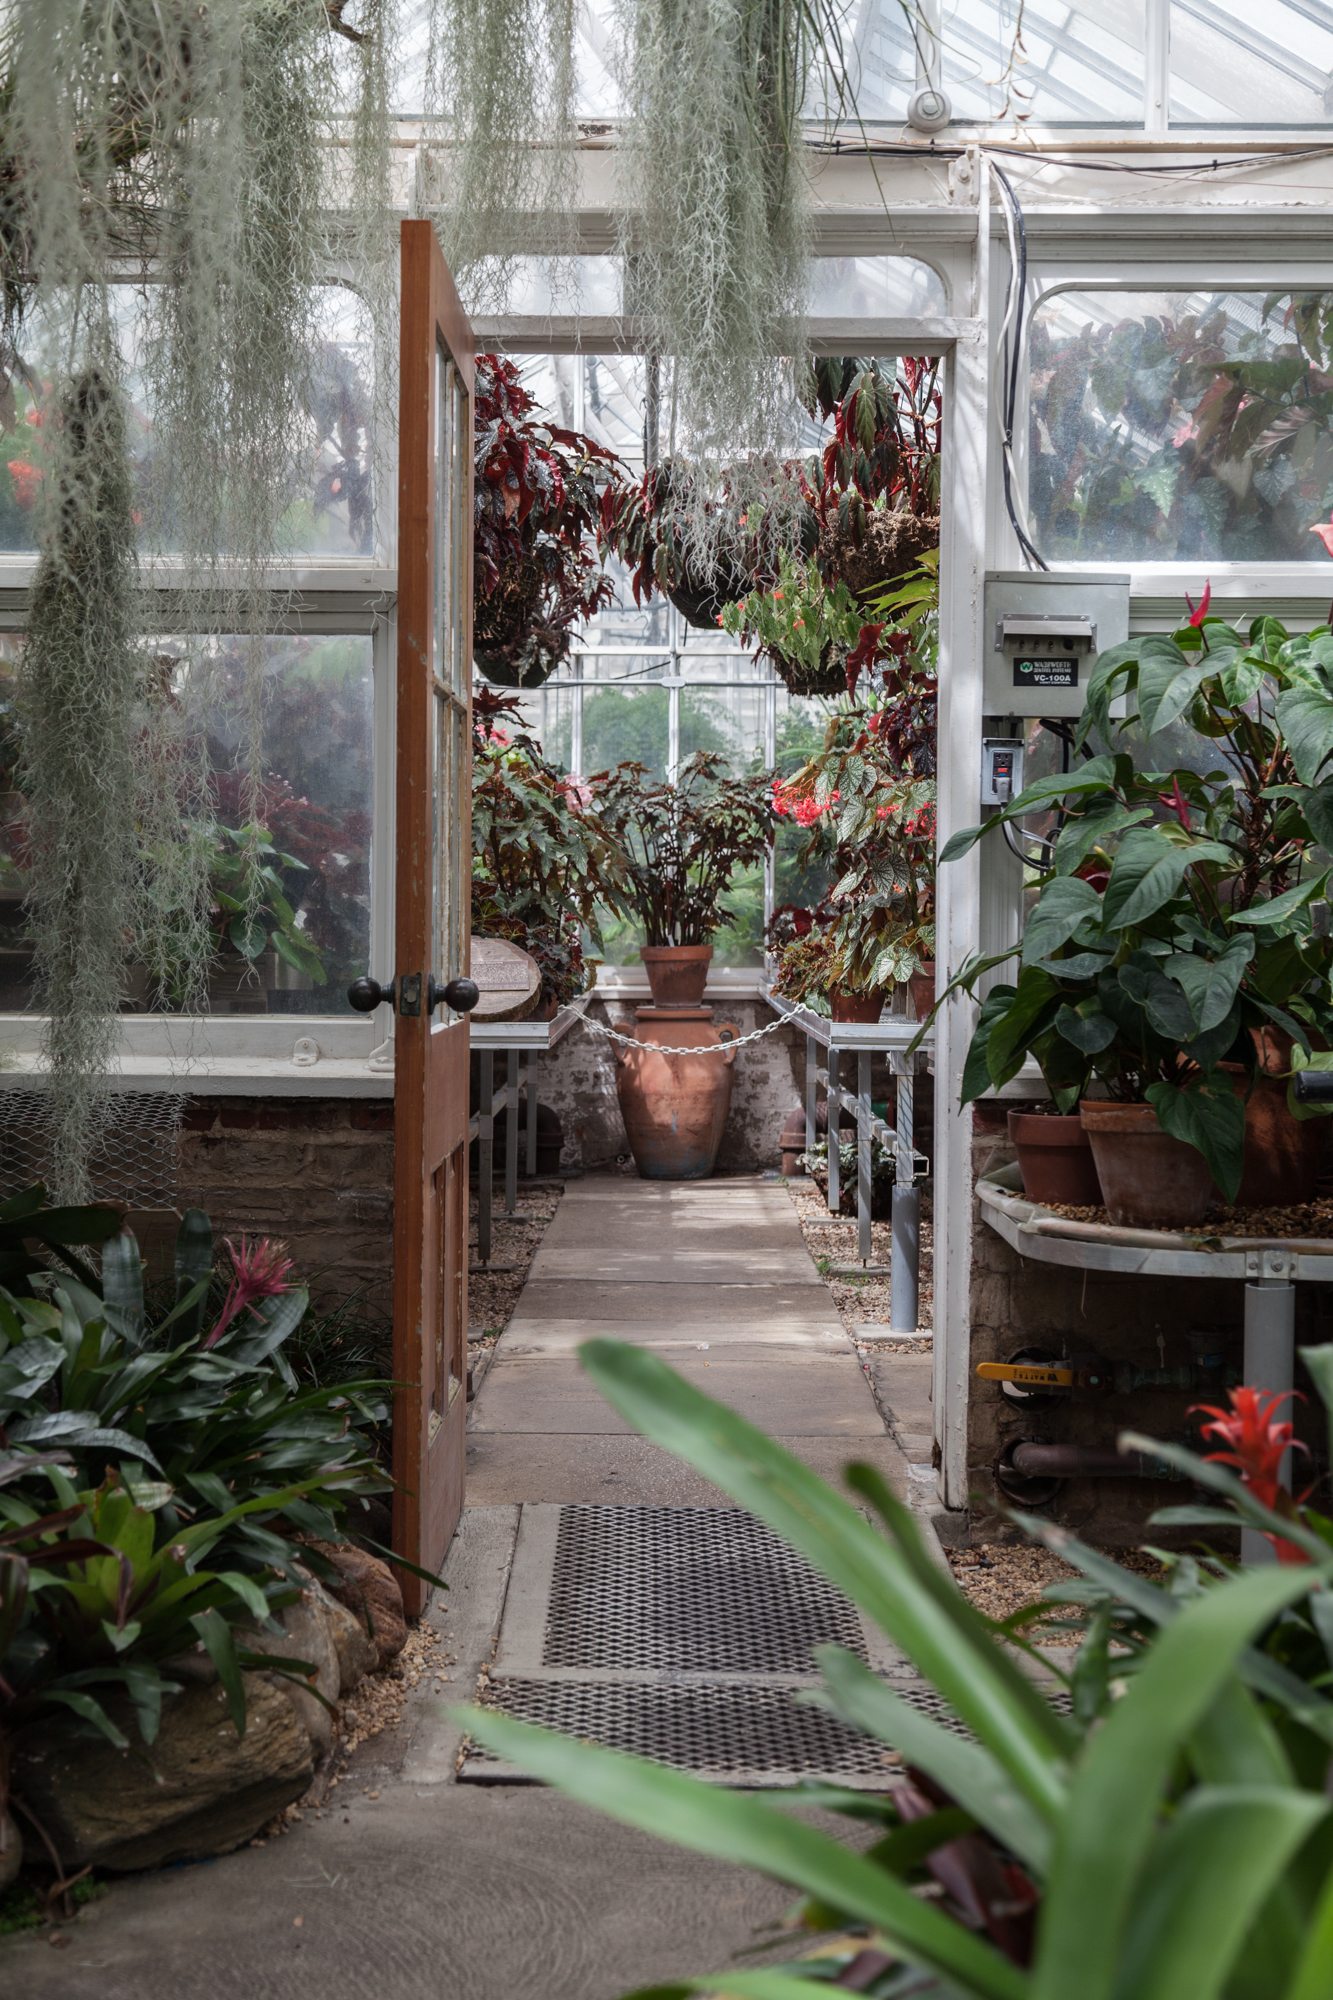 Now entering the Bromeliad Room